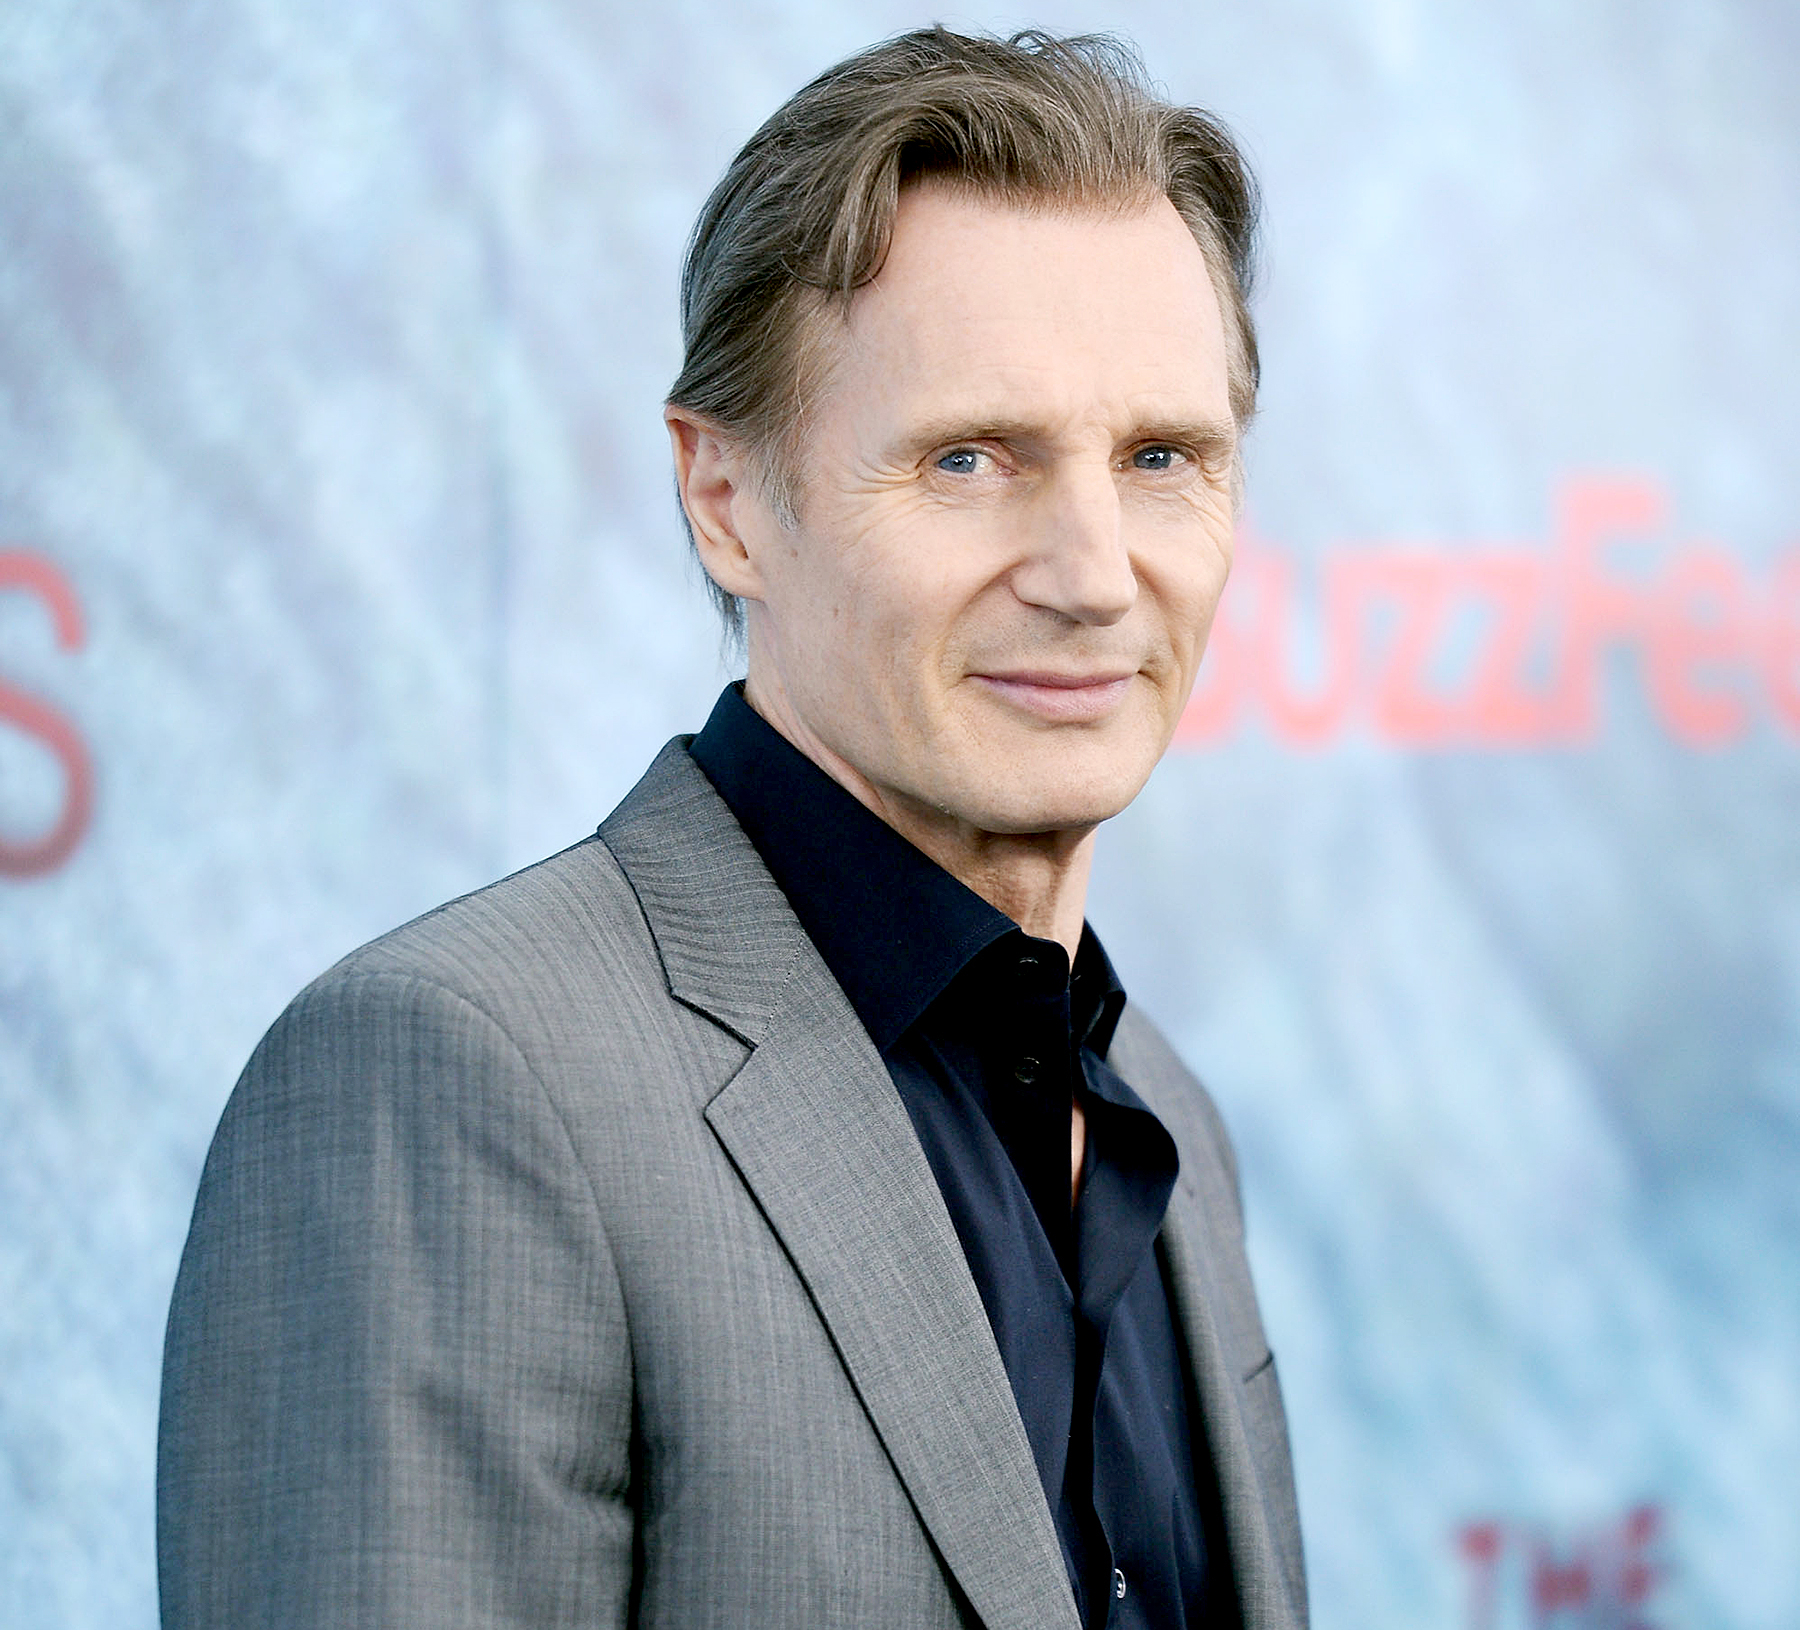 Liam Neeson Shows Up at Sandwich Shop That Said He Could Eat